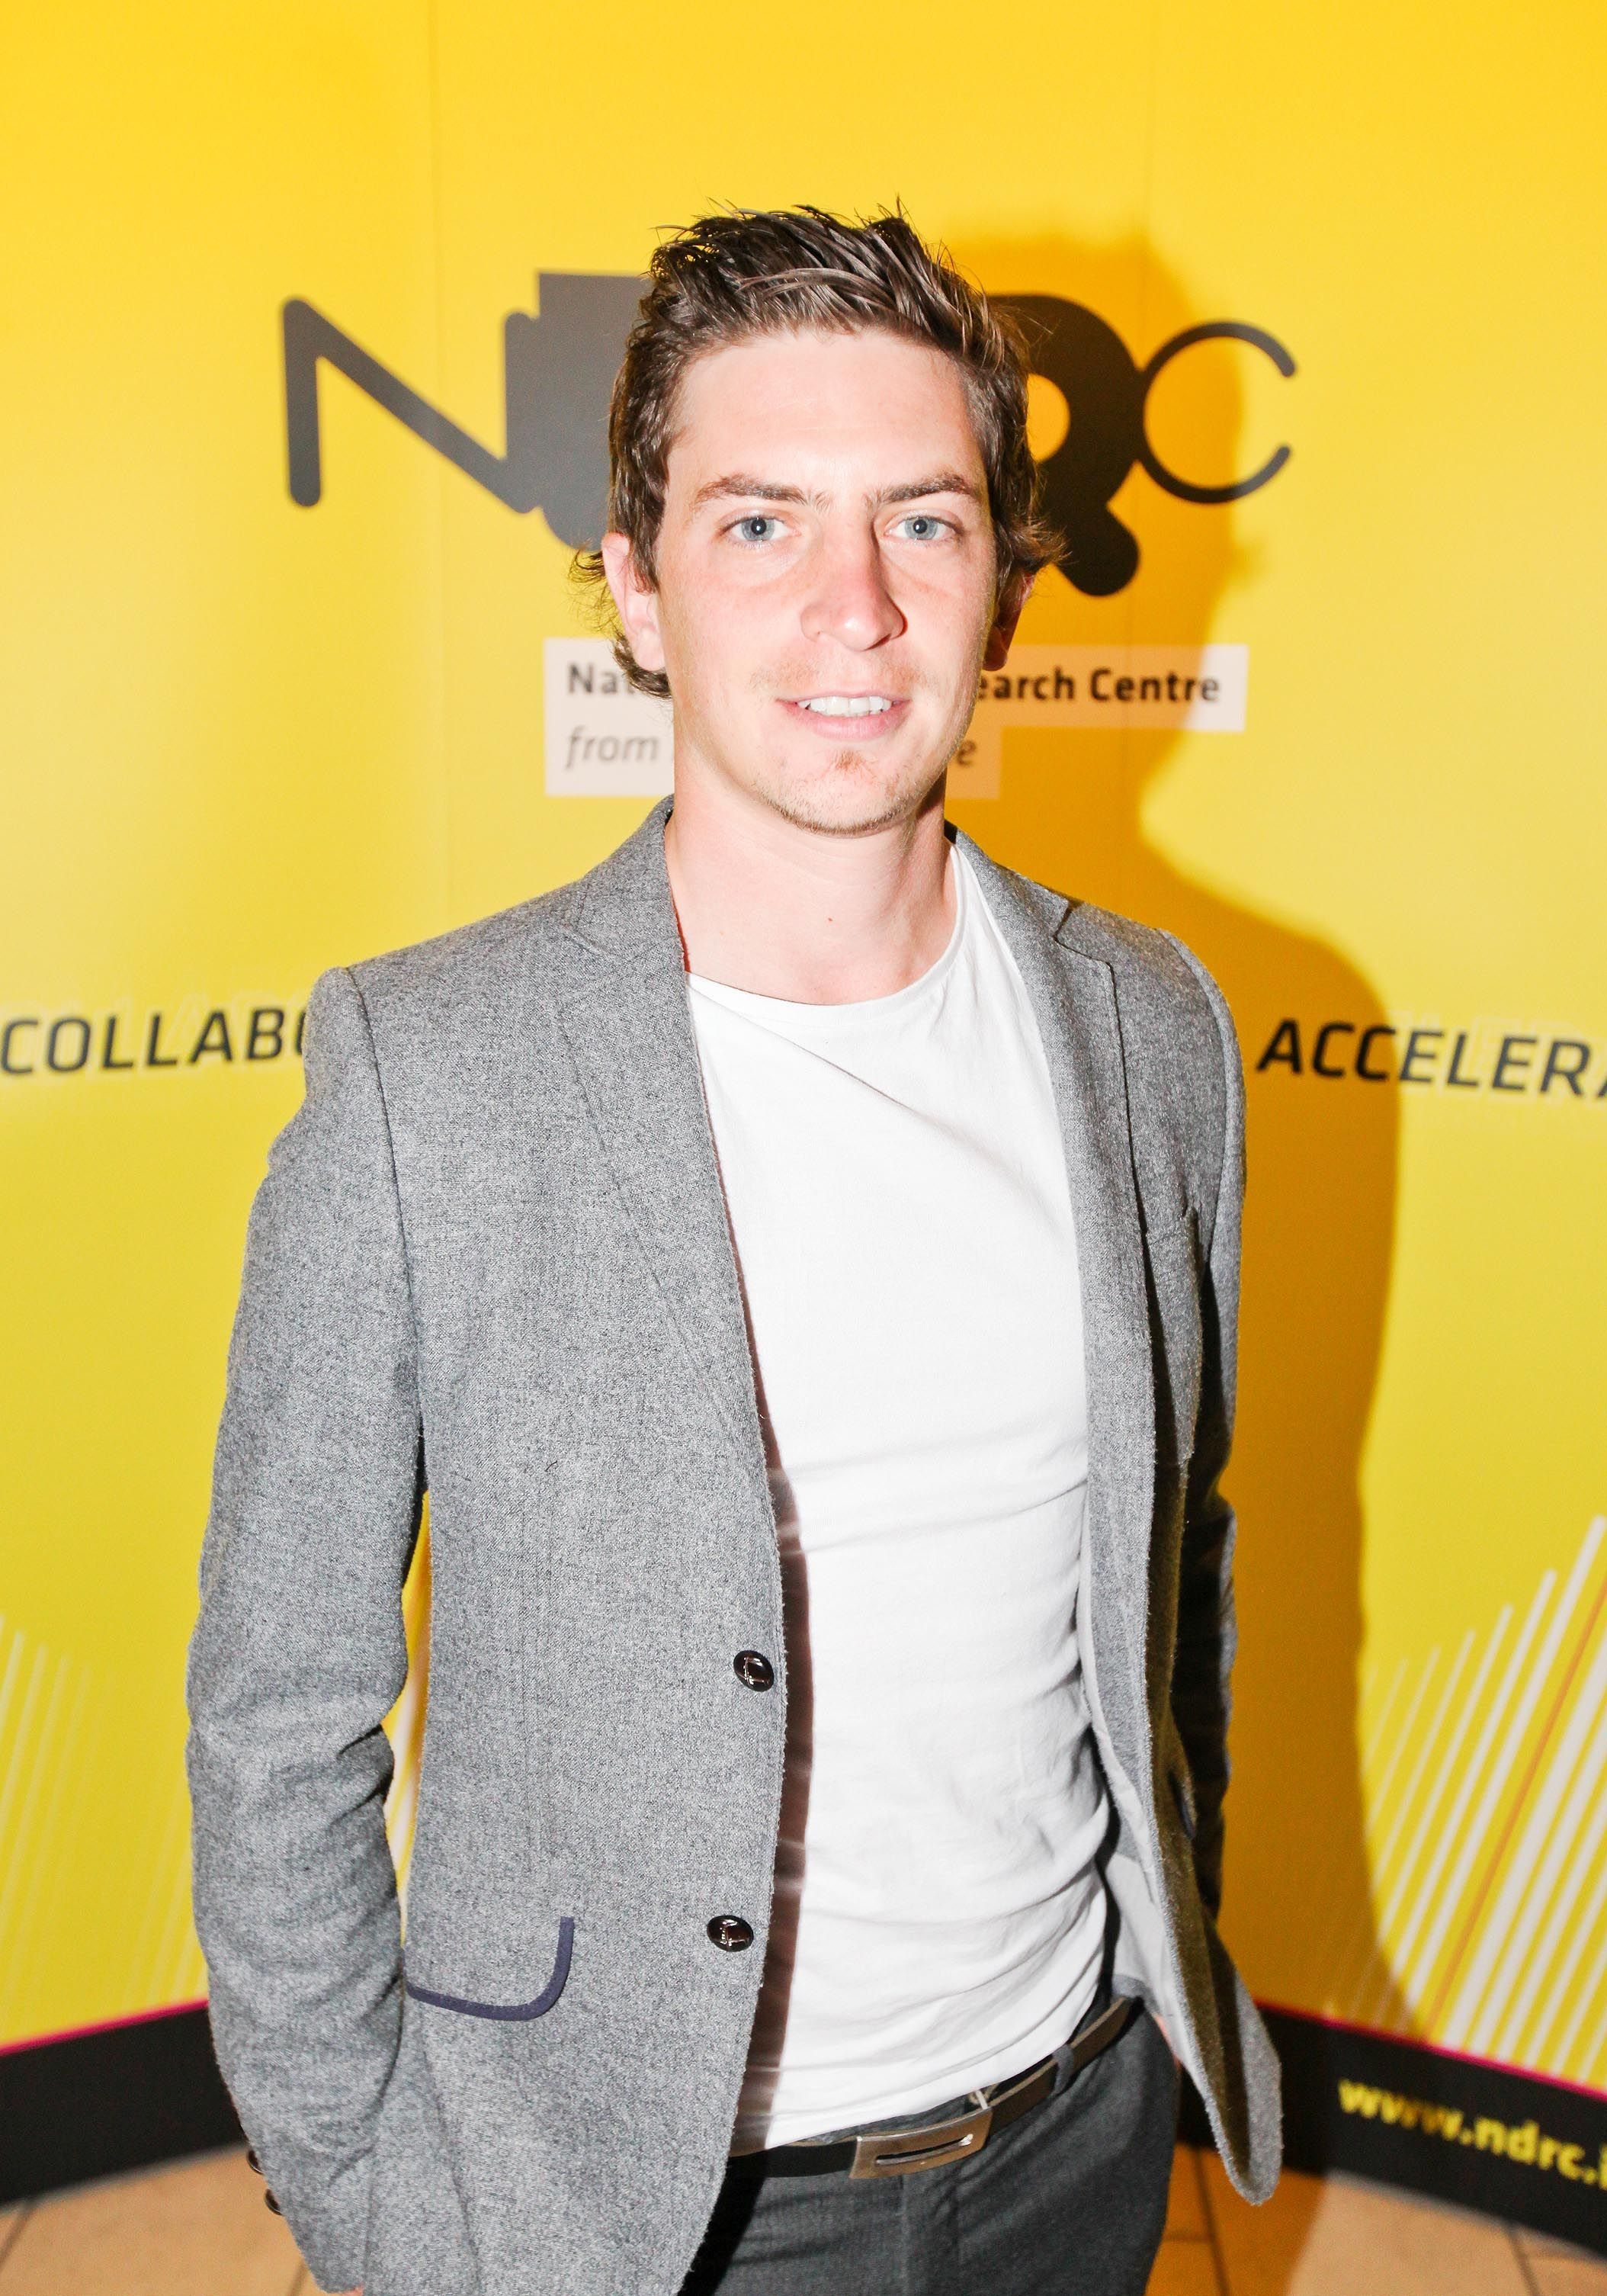 Eoghan at the Launchpad......launch. Sept '11